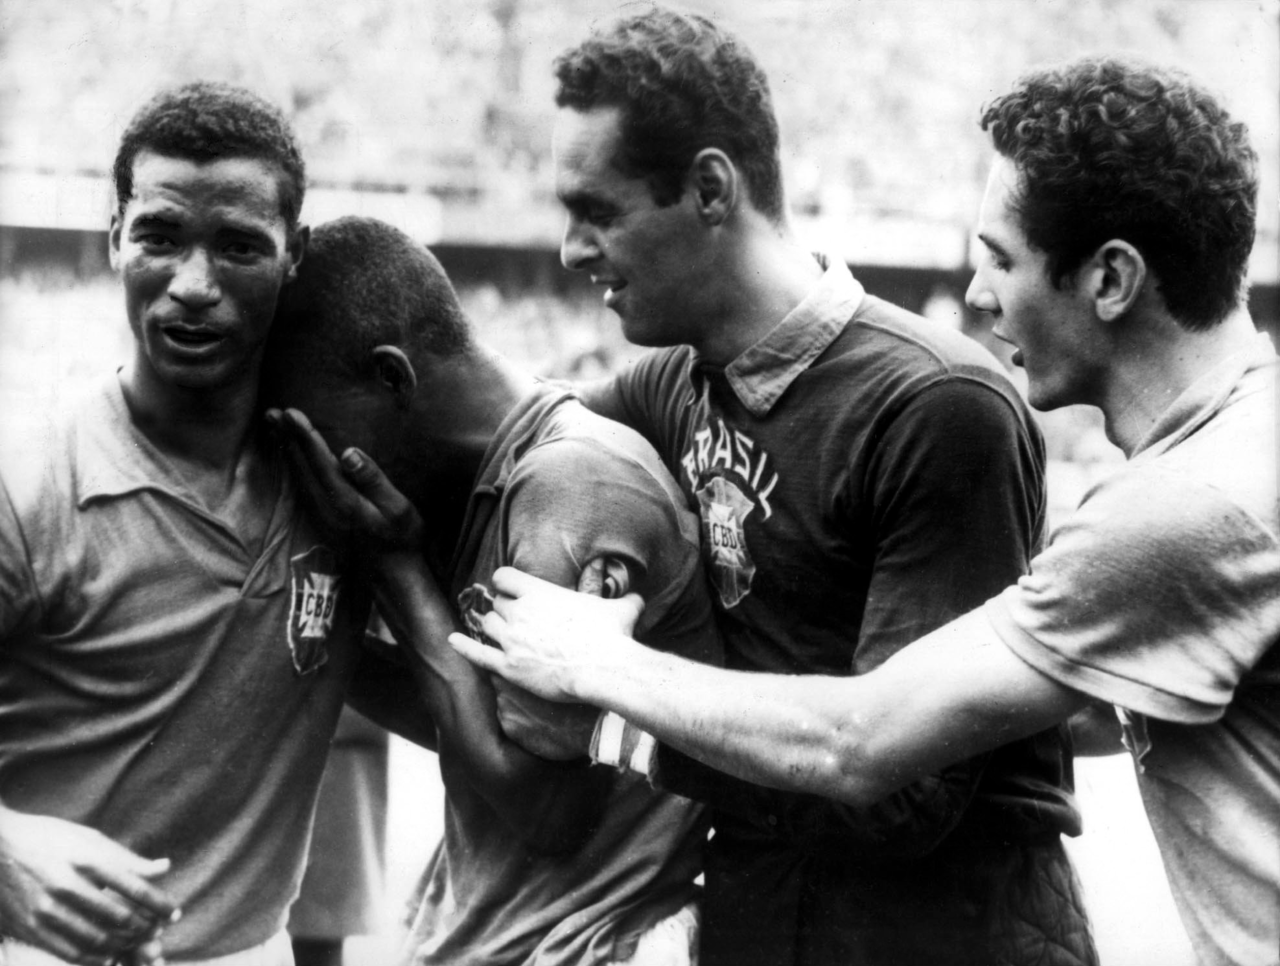 17-year-old Pele weeping with joy after the 1958 World Cup final.